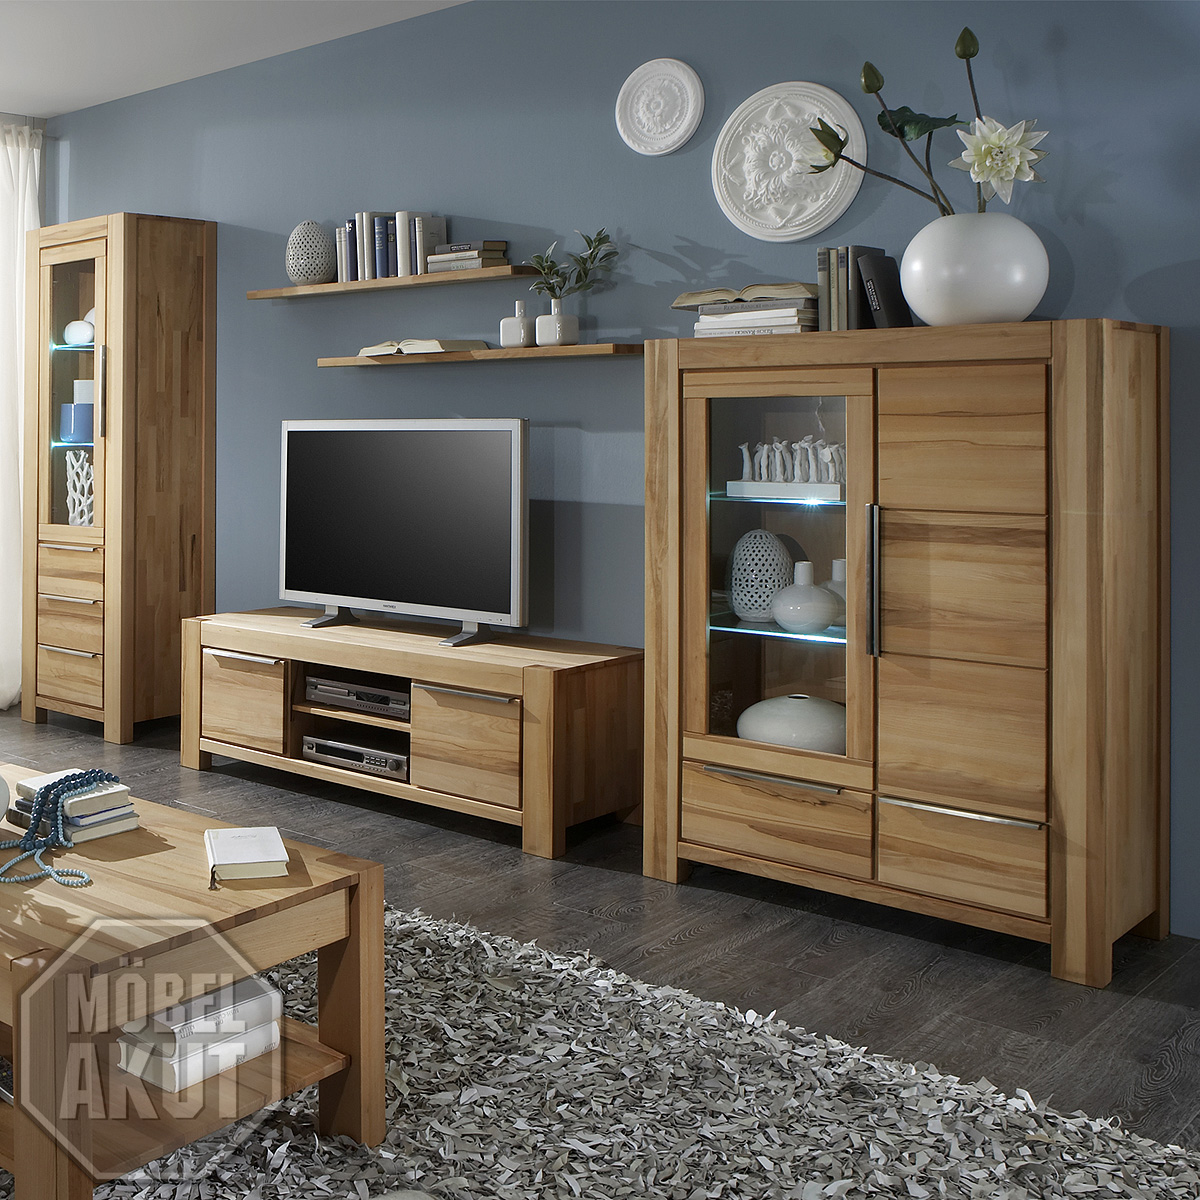 wohnwand nena anbauwand wohnkombi wohnzimmer in kern buche. Black Bedroom Furniture Sets. Home Design Ideas